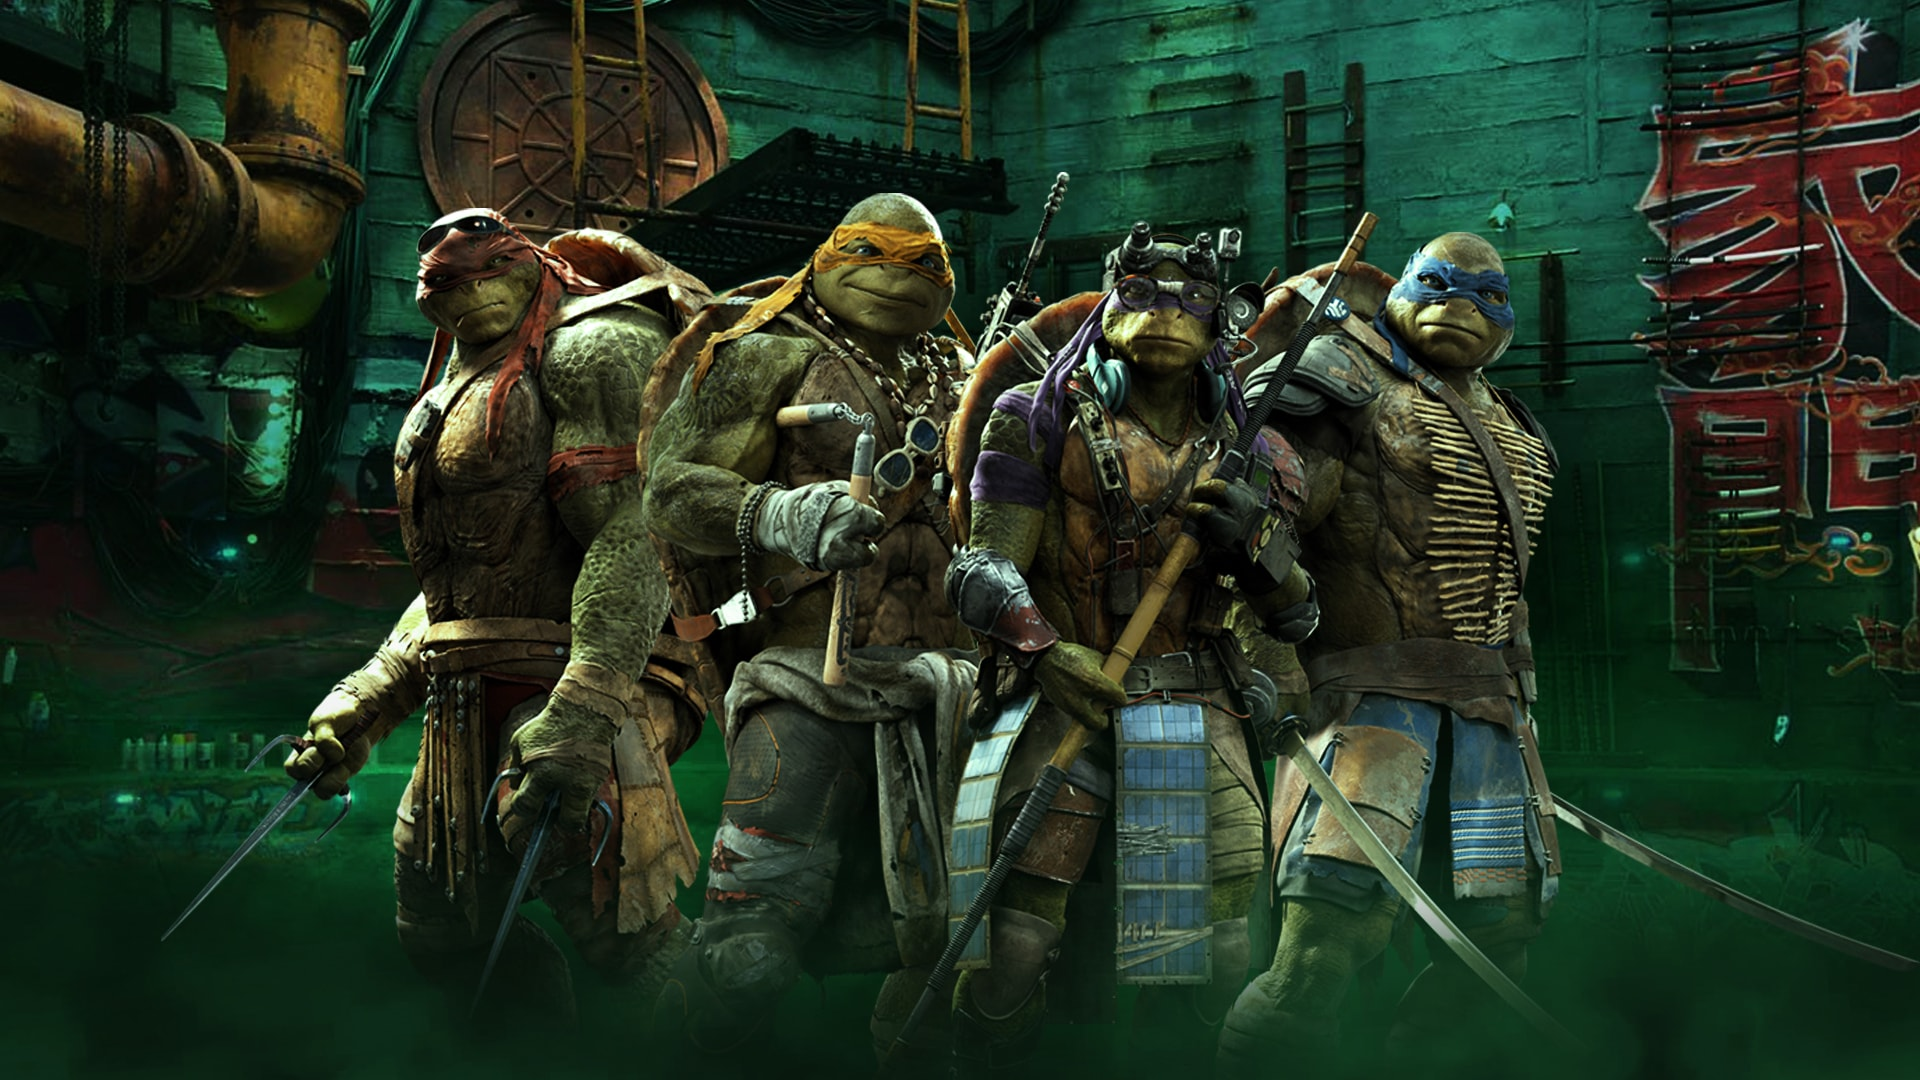 Teenage Mutant Ninja Turtles Hd Wallpapers 7wallpapers Net